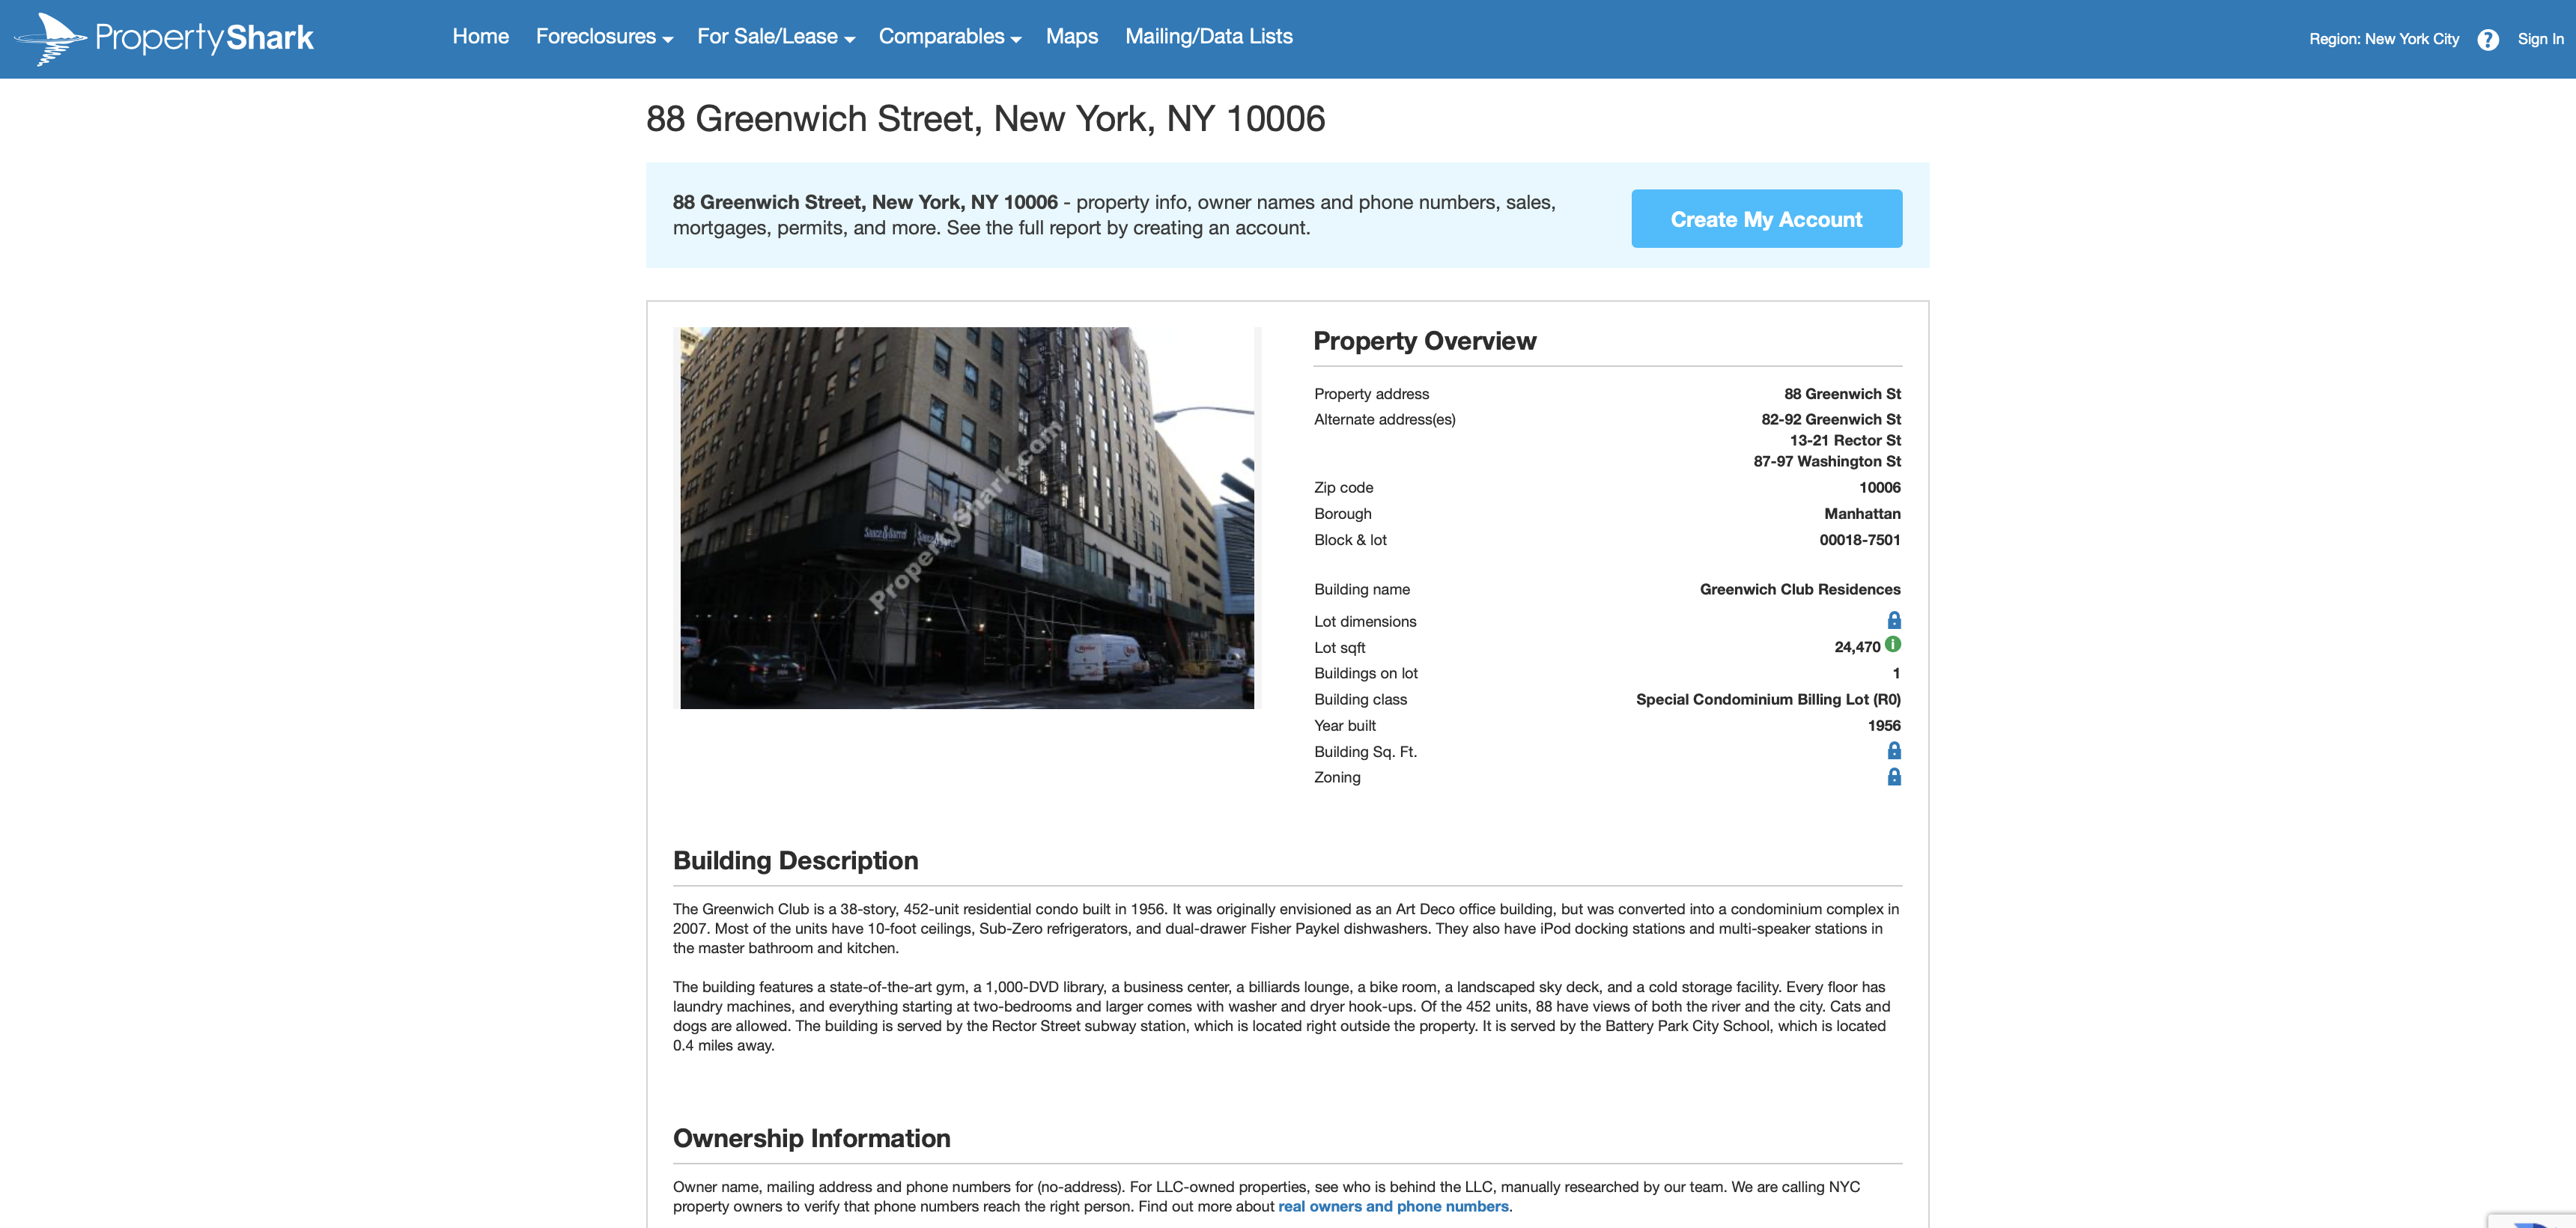 88 Greenwich St., NY (PropertyShark).png